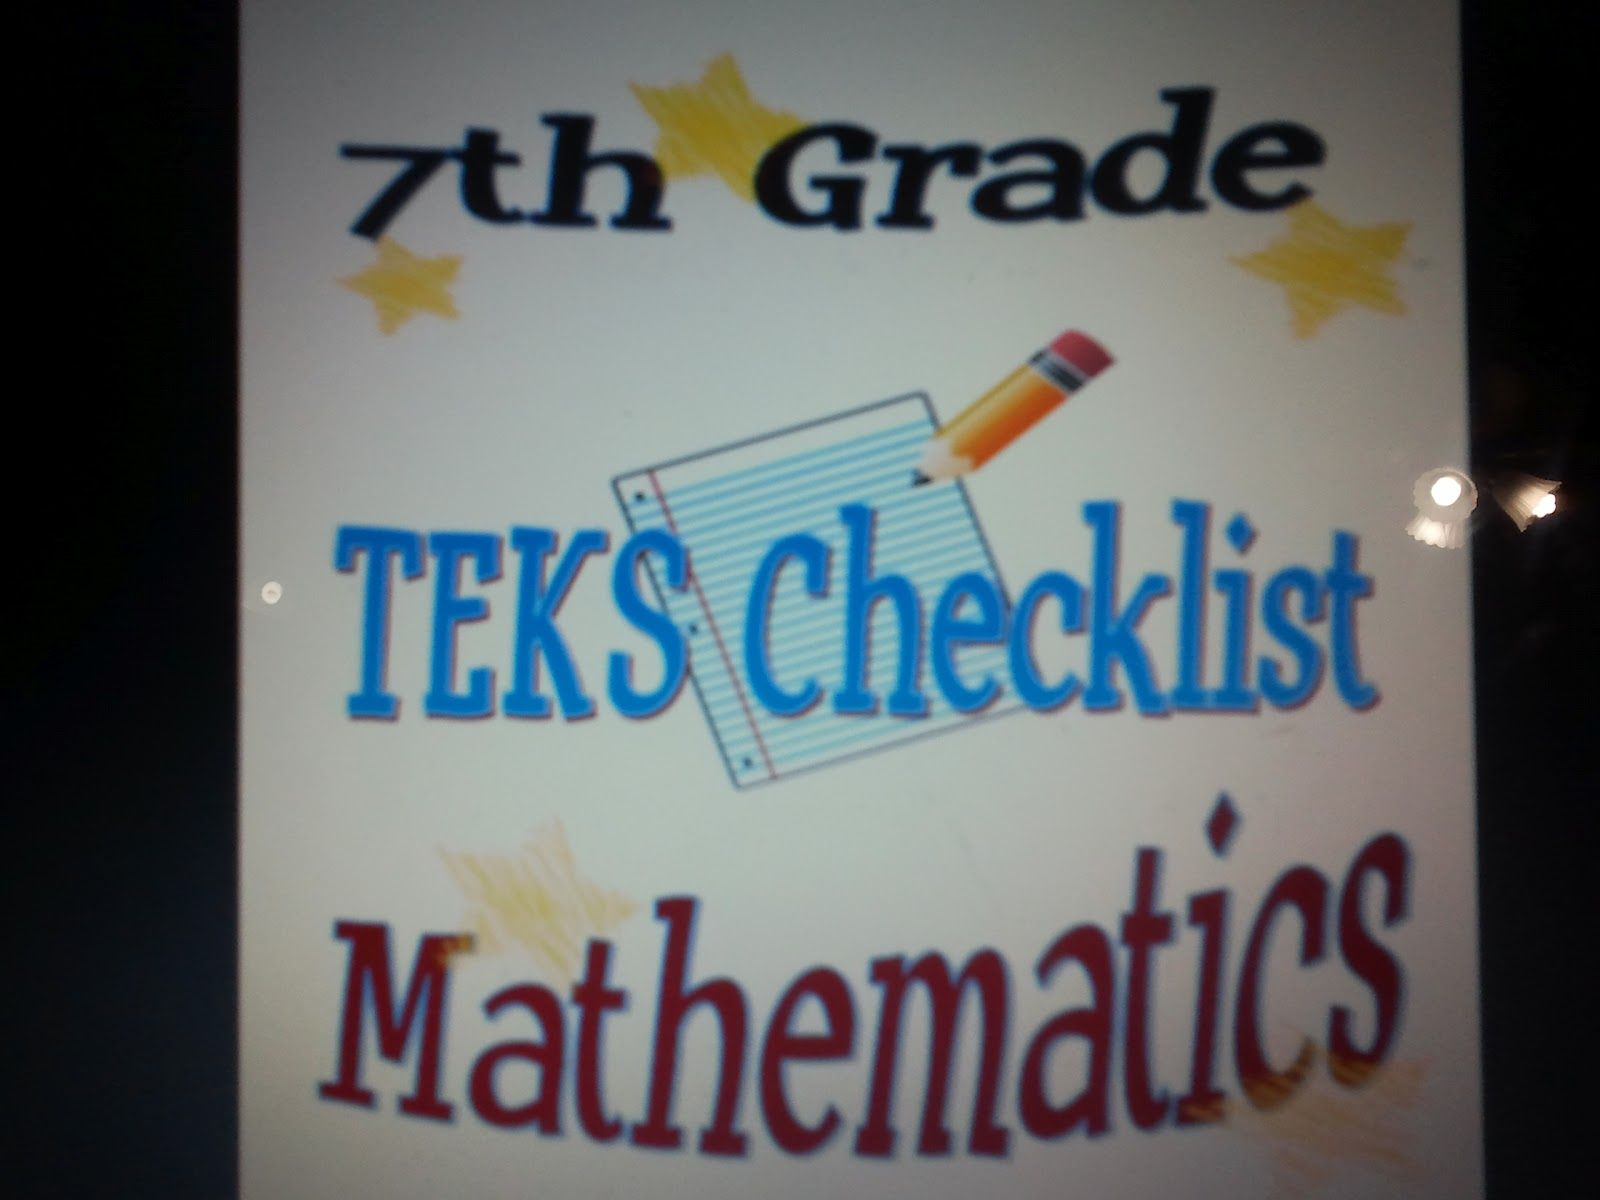 7th Grade Staar Math Teks Checklist Cookin Up Fun With